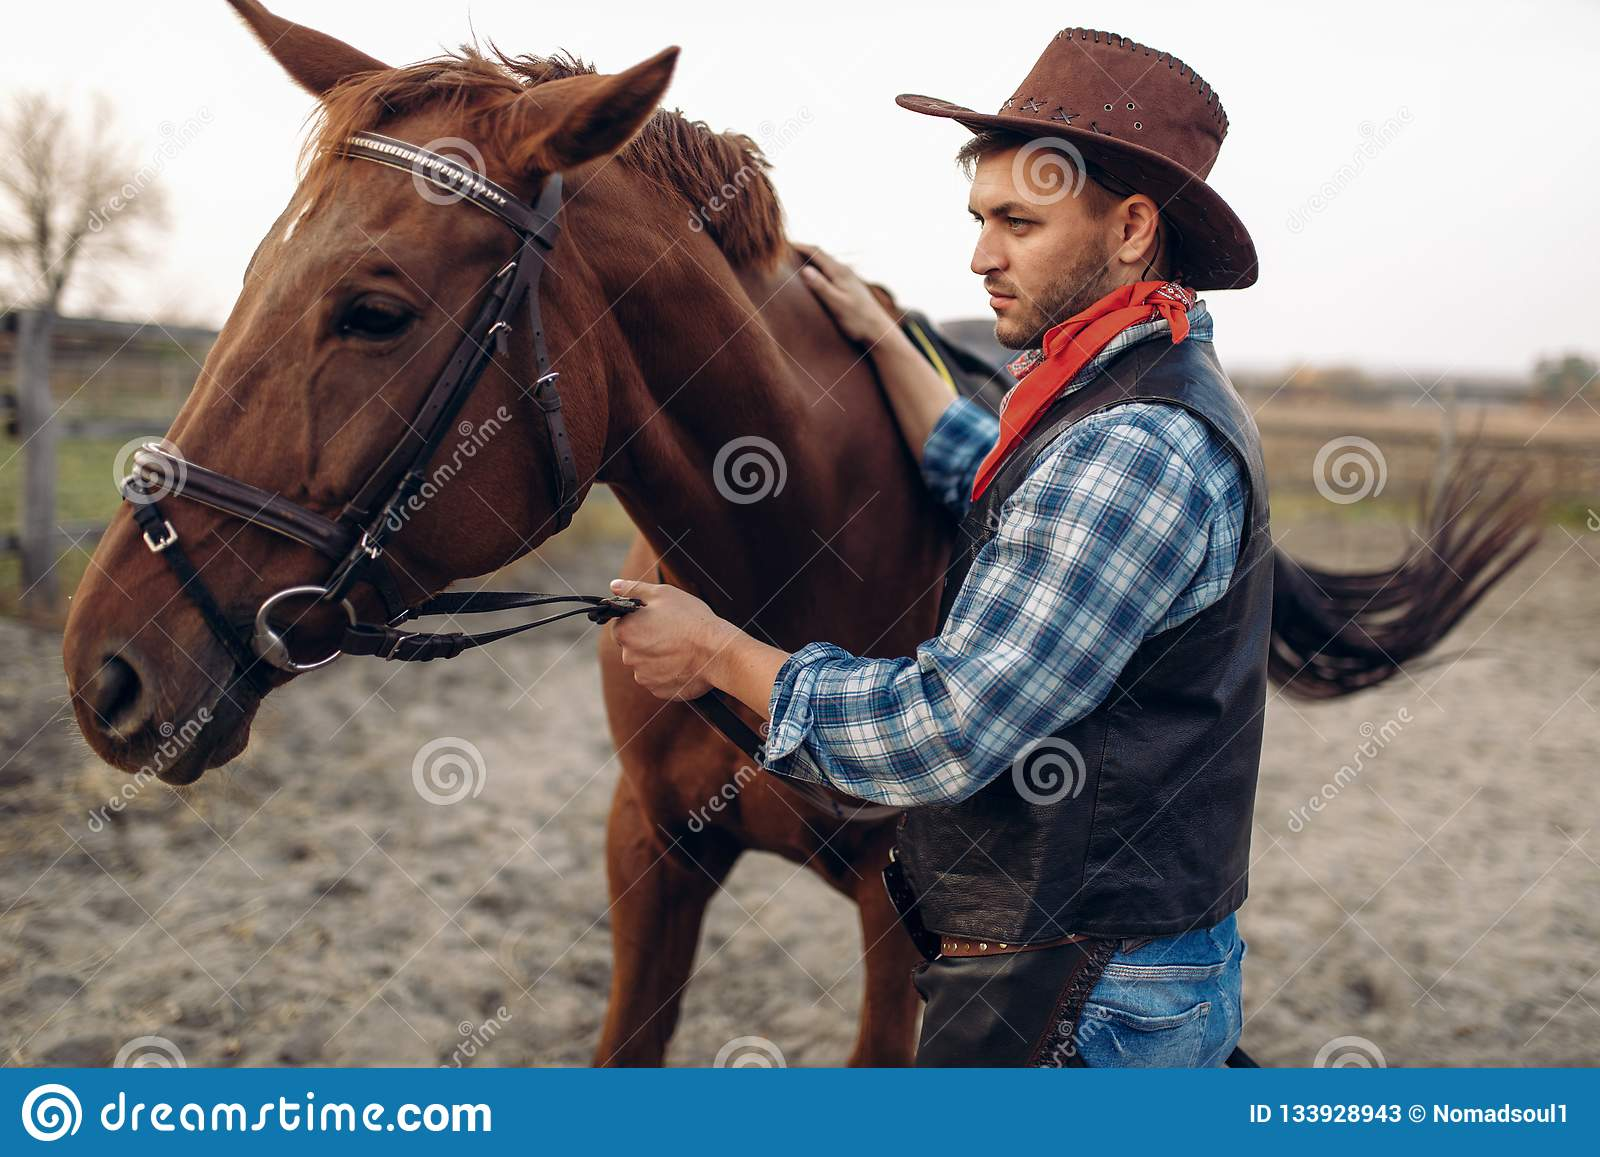 Cowboy Poses With Horse On Texas Ranch Wild West Stock Image Image Of Person Ride 133928943